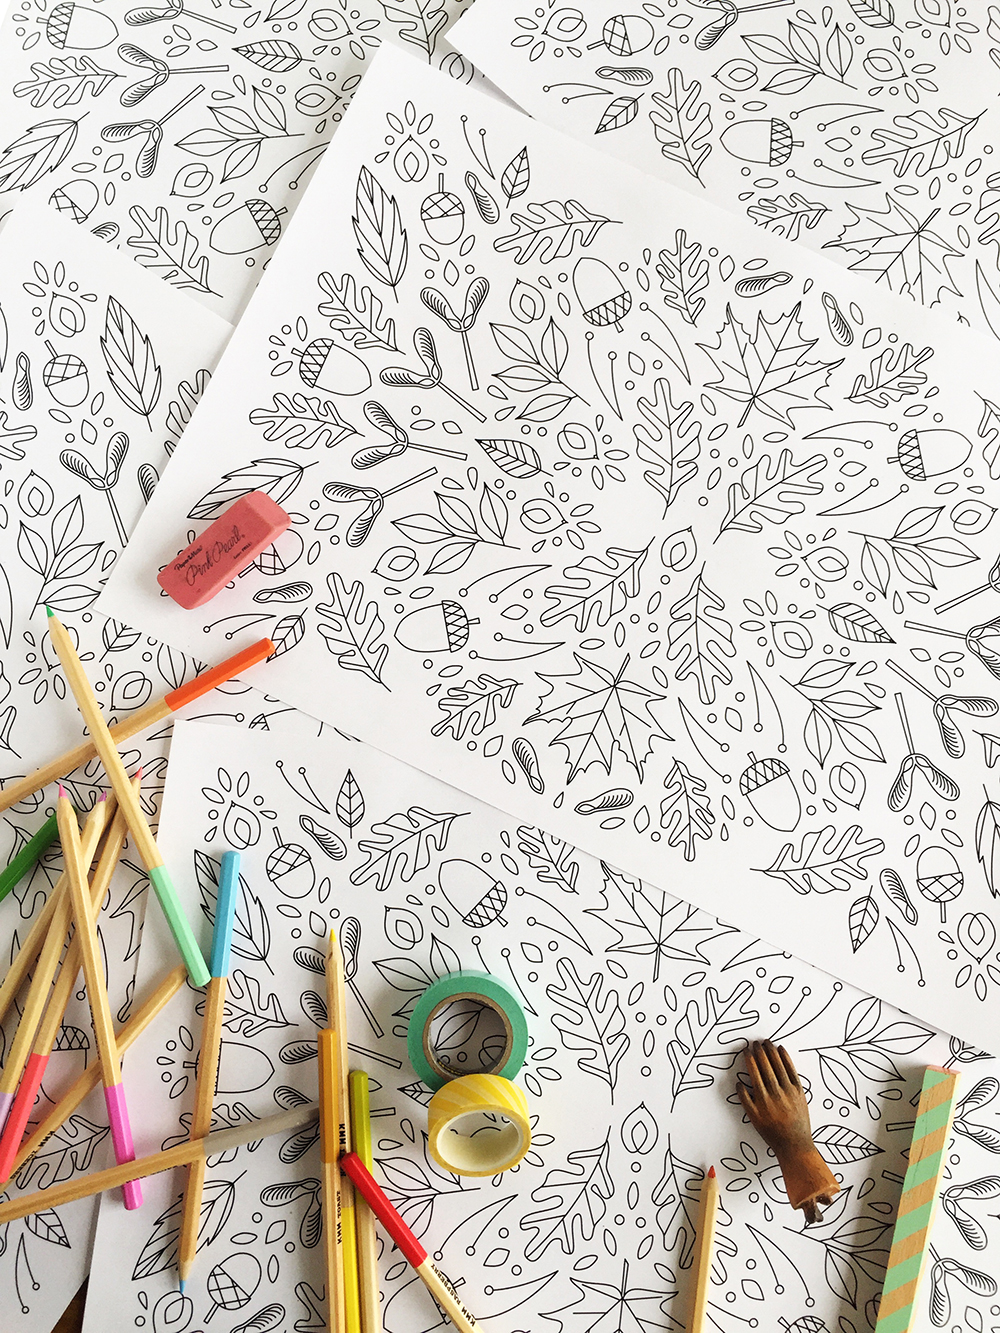 Printable Coloring Thanksgiving Placemats - The House That Lars Built